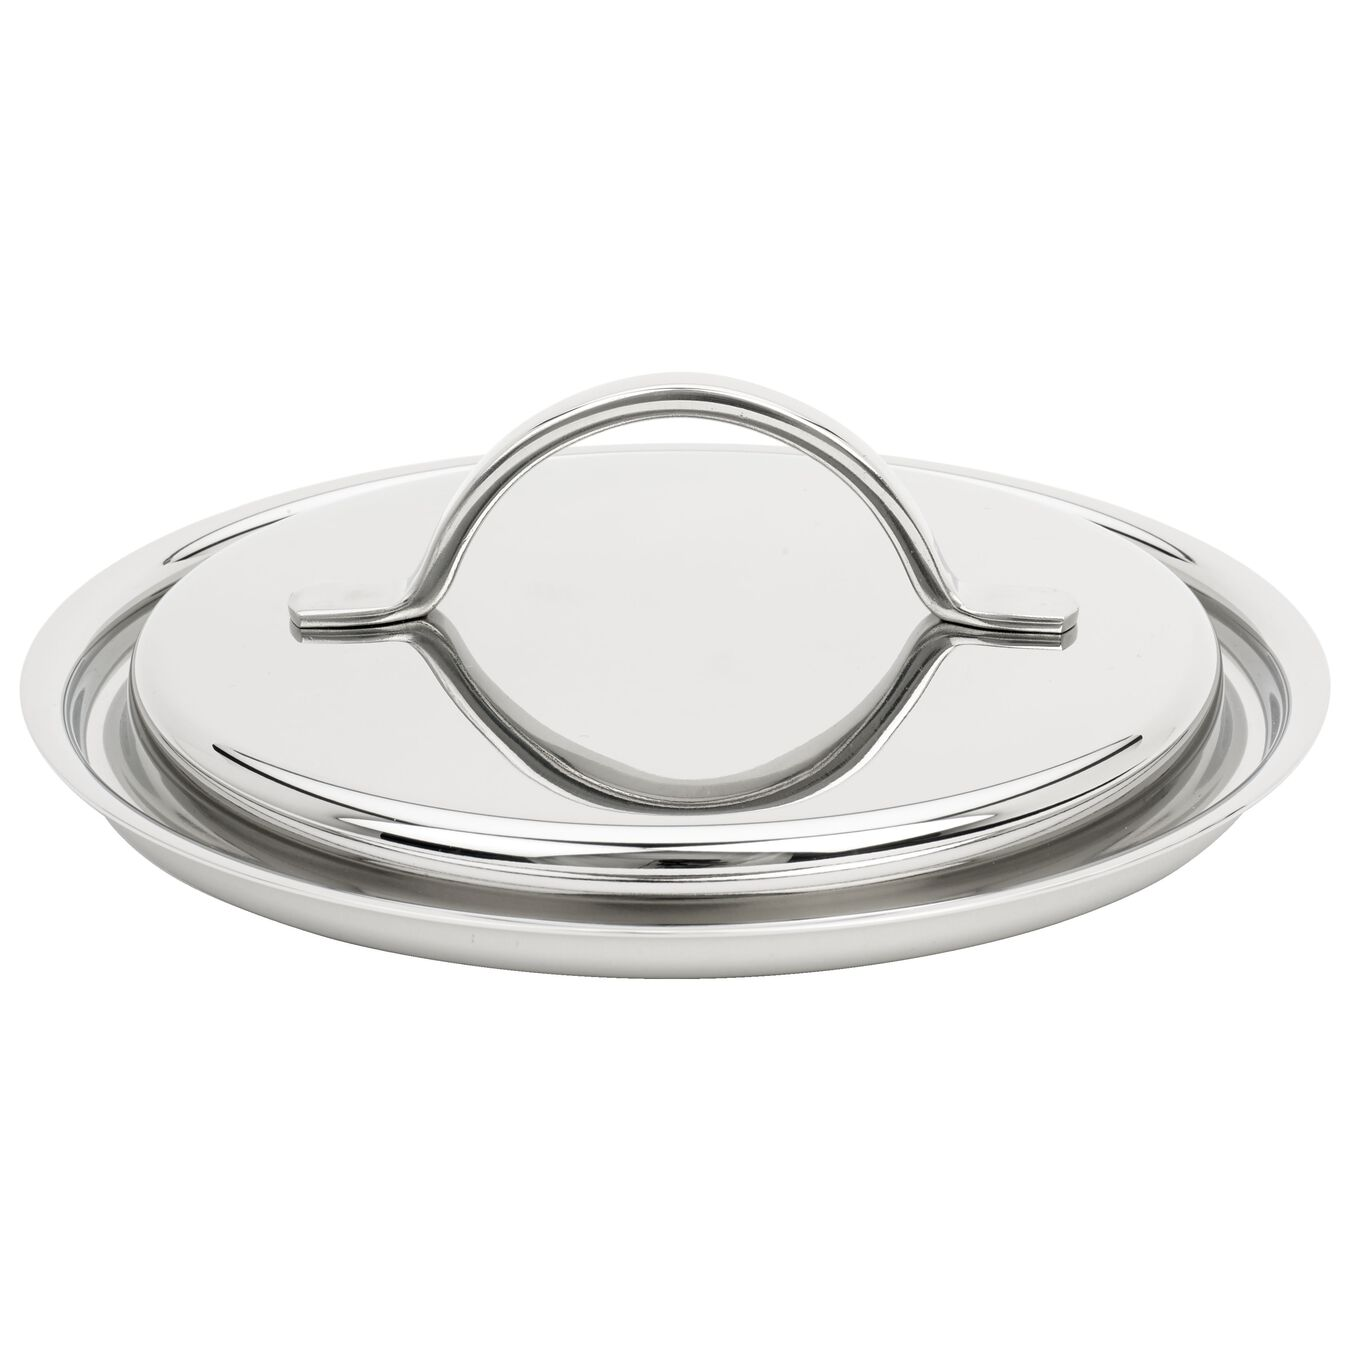 Couvercle 20 cm Inox 18/10,,large 1